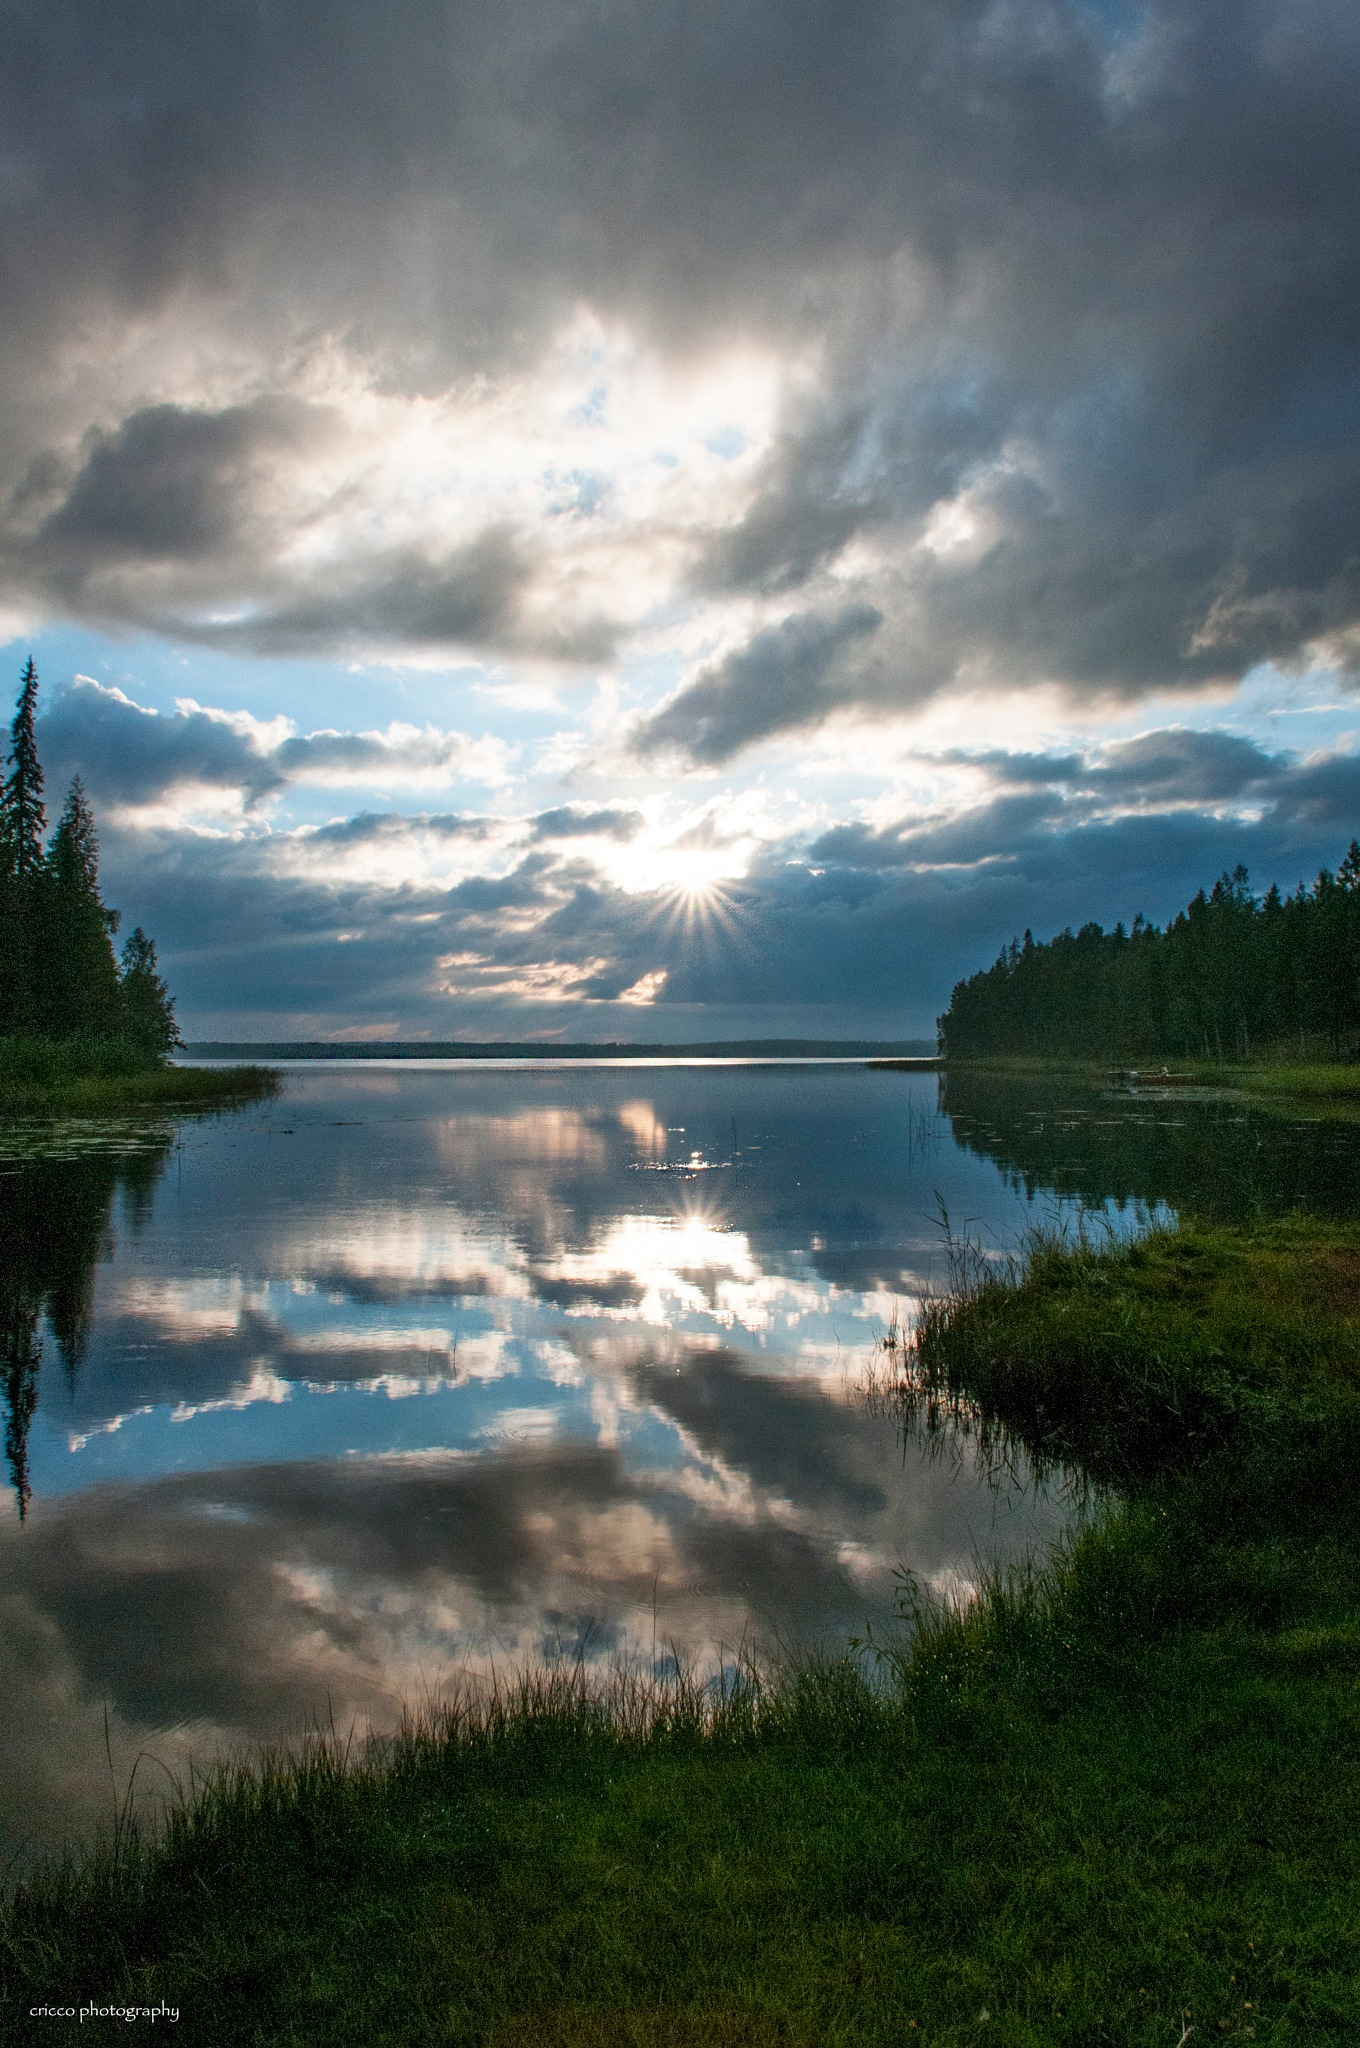 Afternoon at a beautiful bay in the Norrbotten archipelago by cricco photography